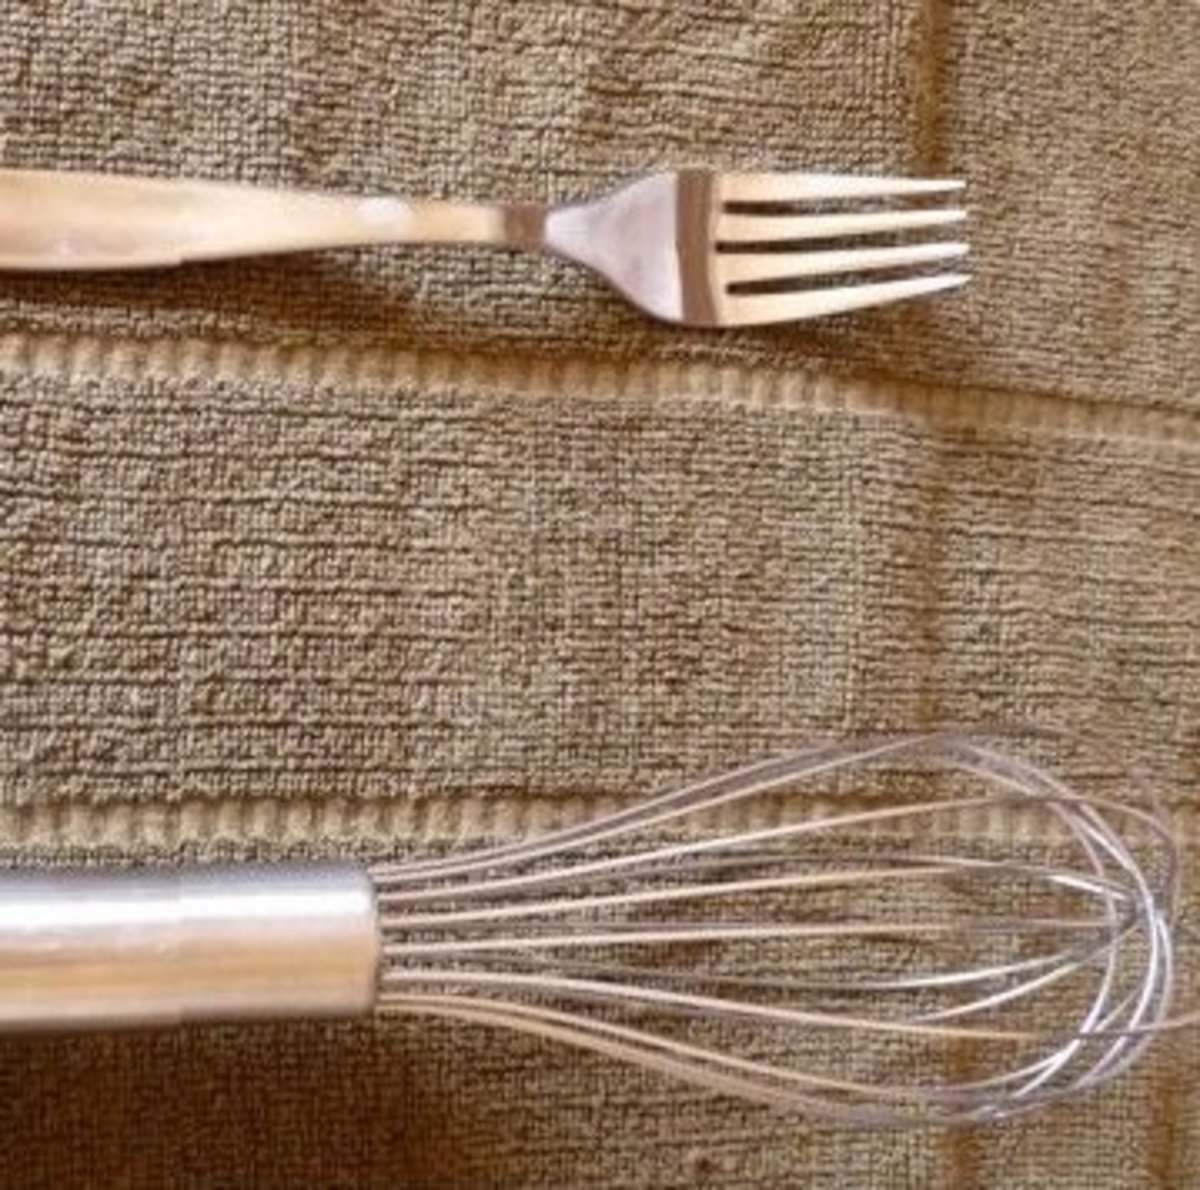 Need a whisk? Use a fork.